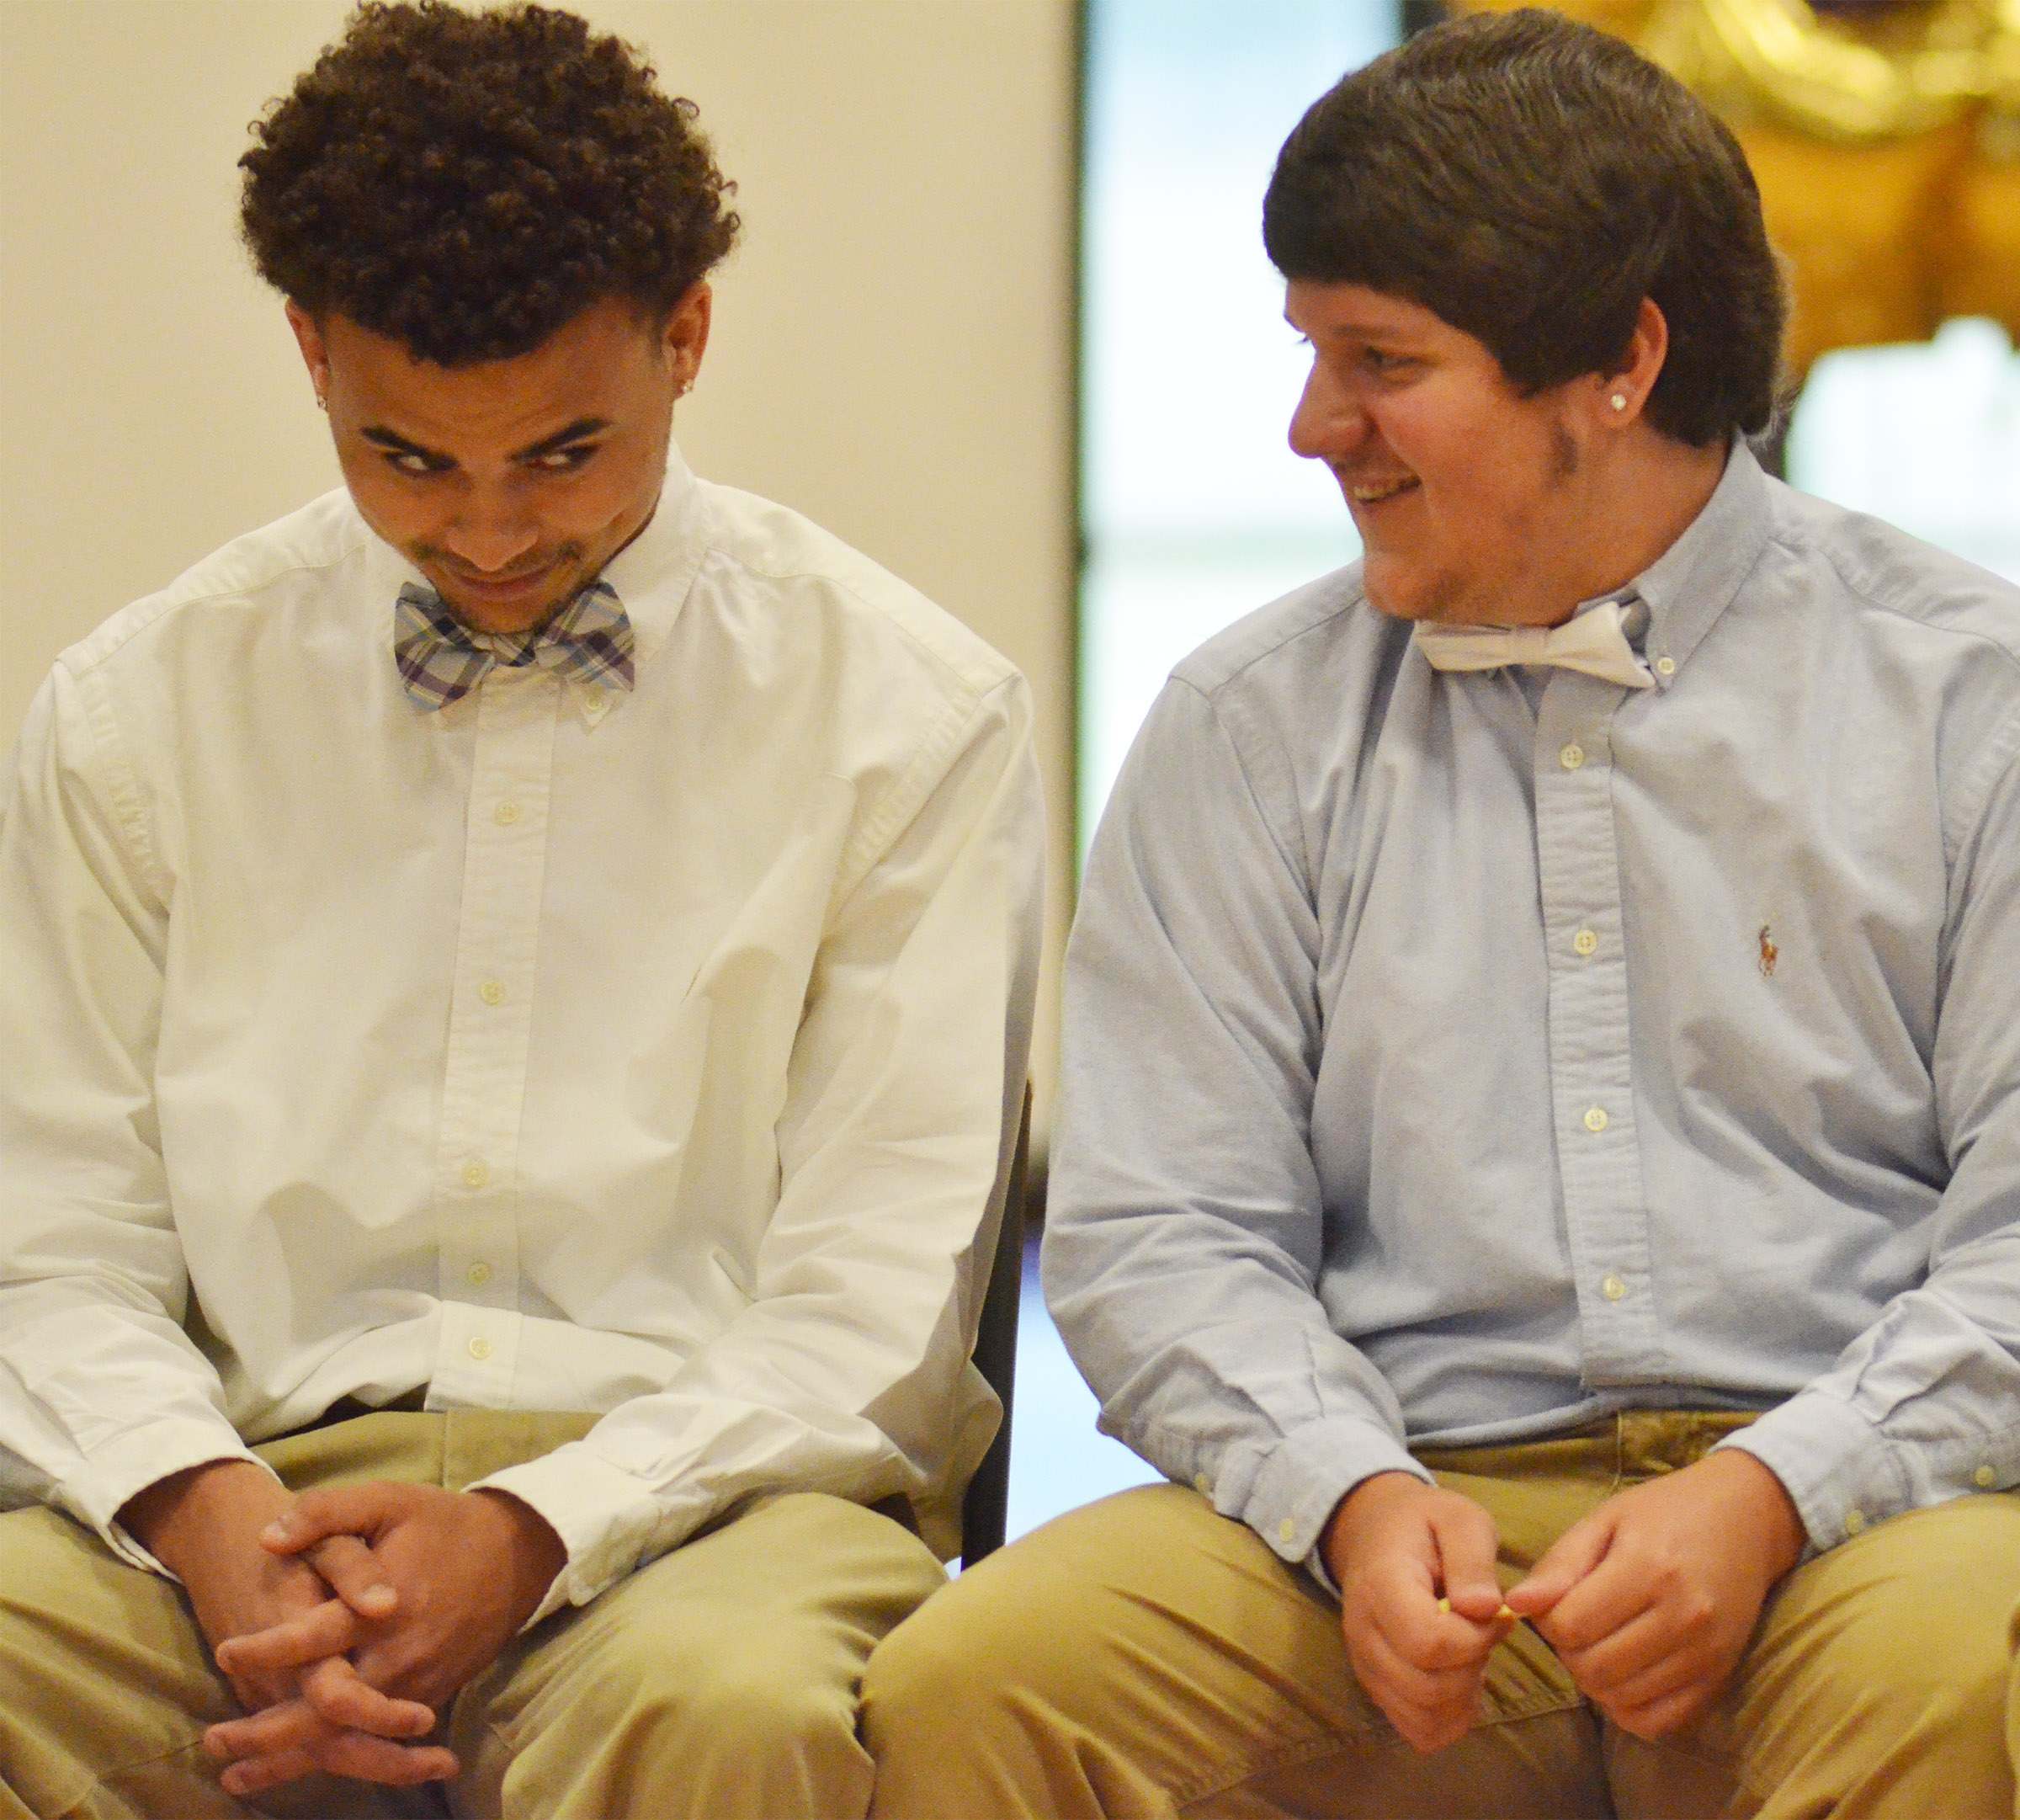 Arick Groves, at left, and Donnie Osinger talk during Class Night.